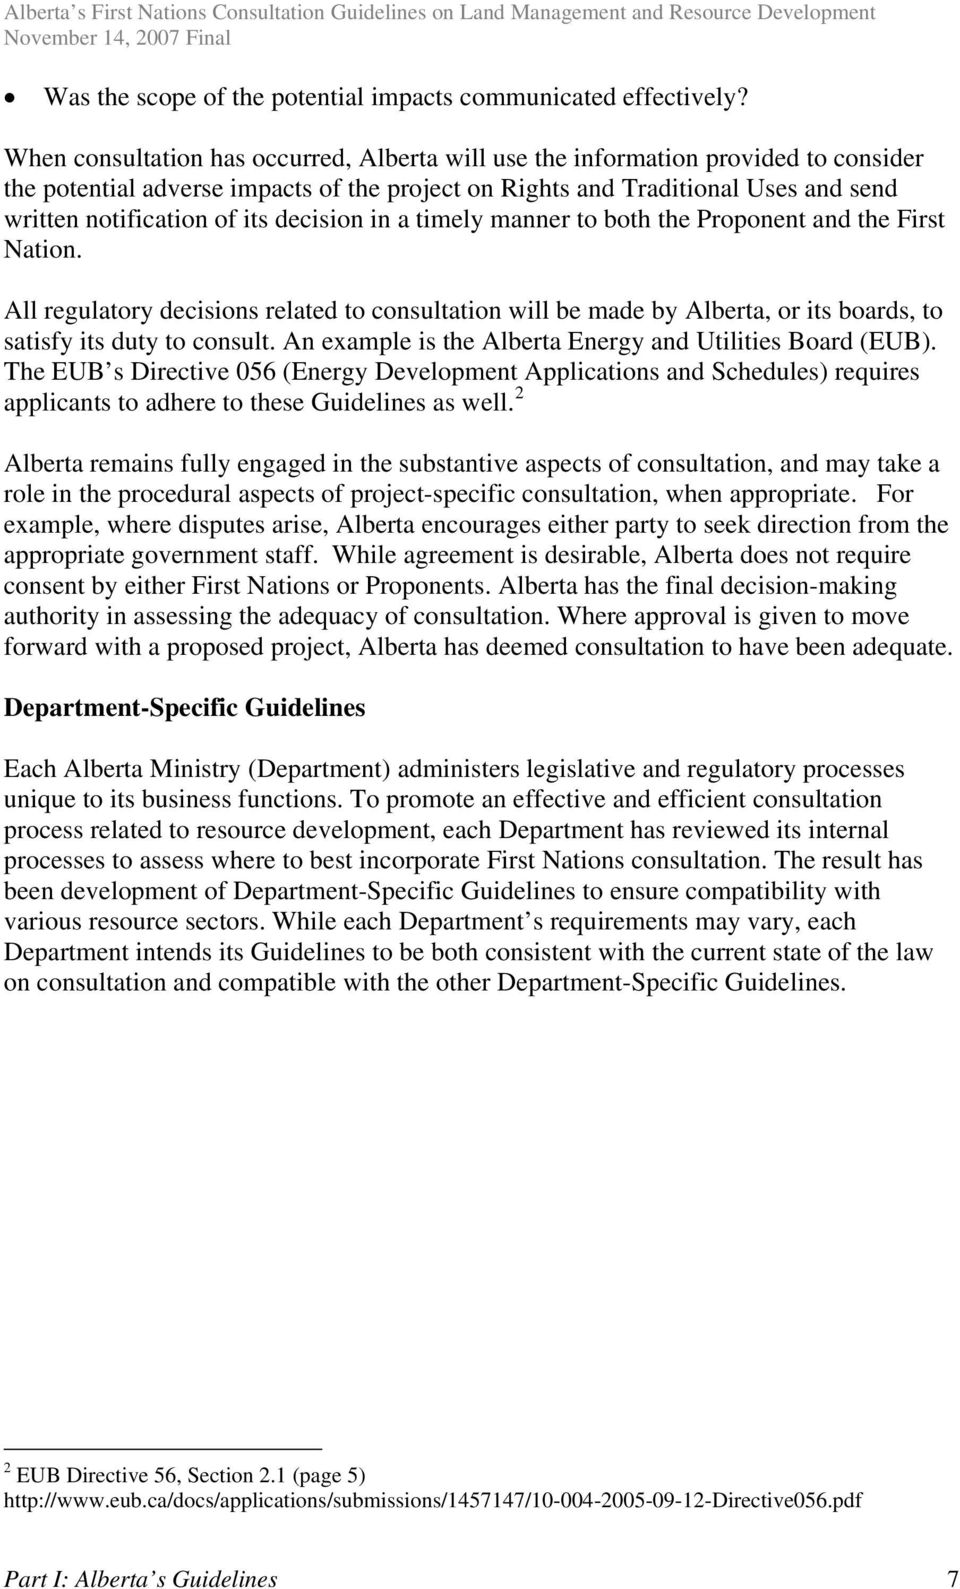 decision in a timely manner to both the Proponent and the First Nation. All regulatory decisions related to consultation will be made by Alberta, or its boards, to satisfy its duty to consult.